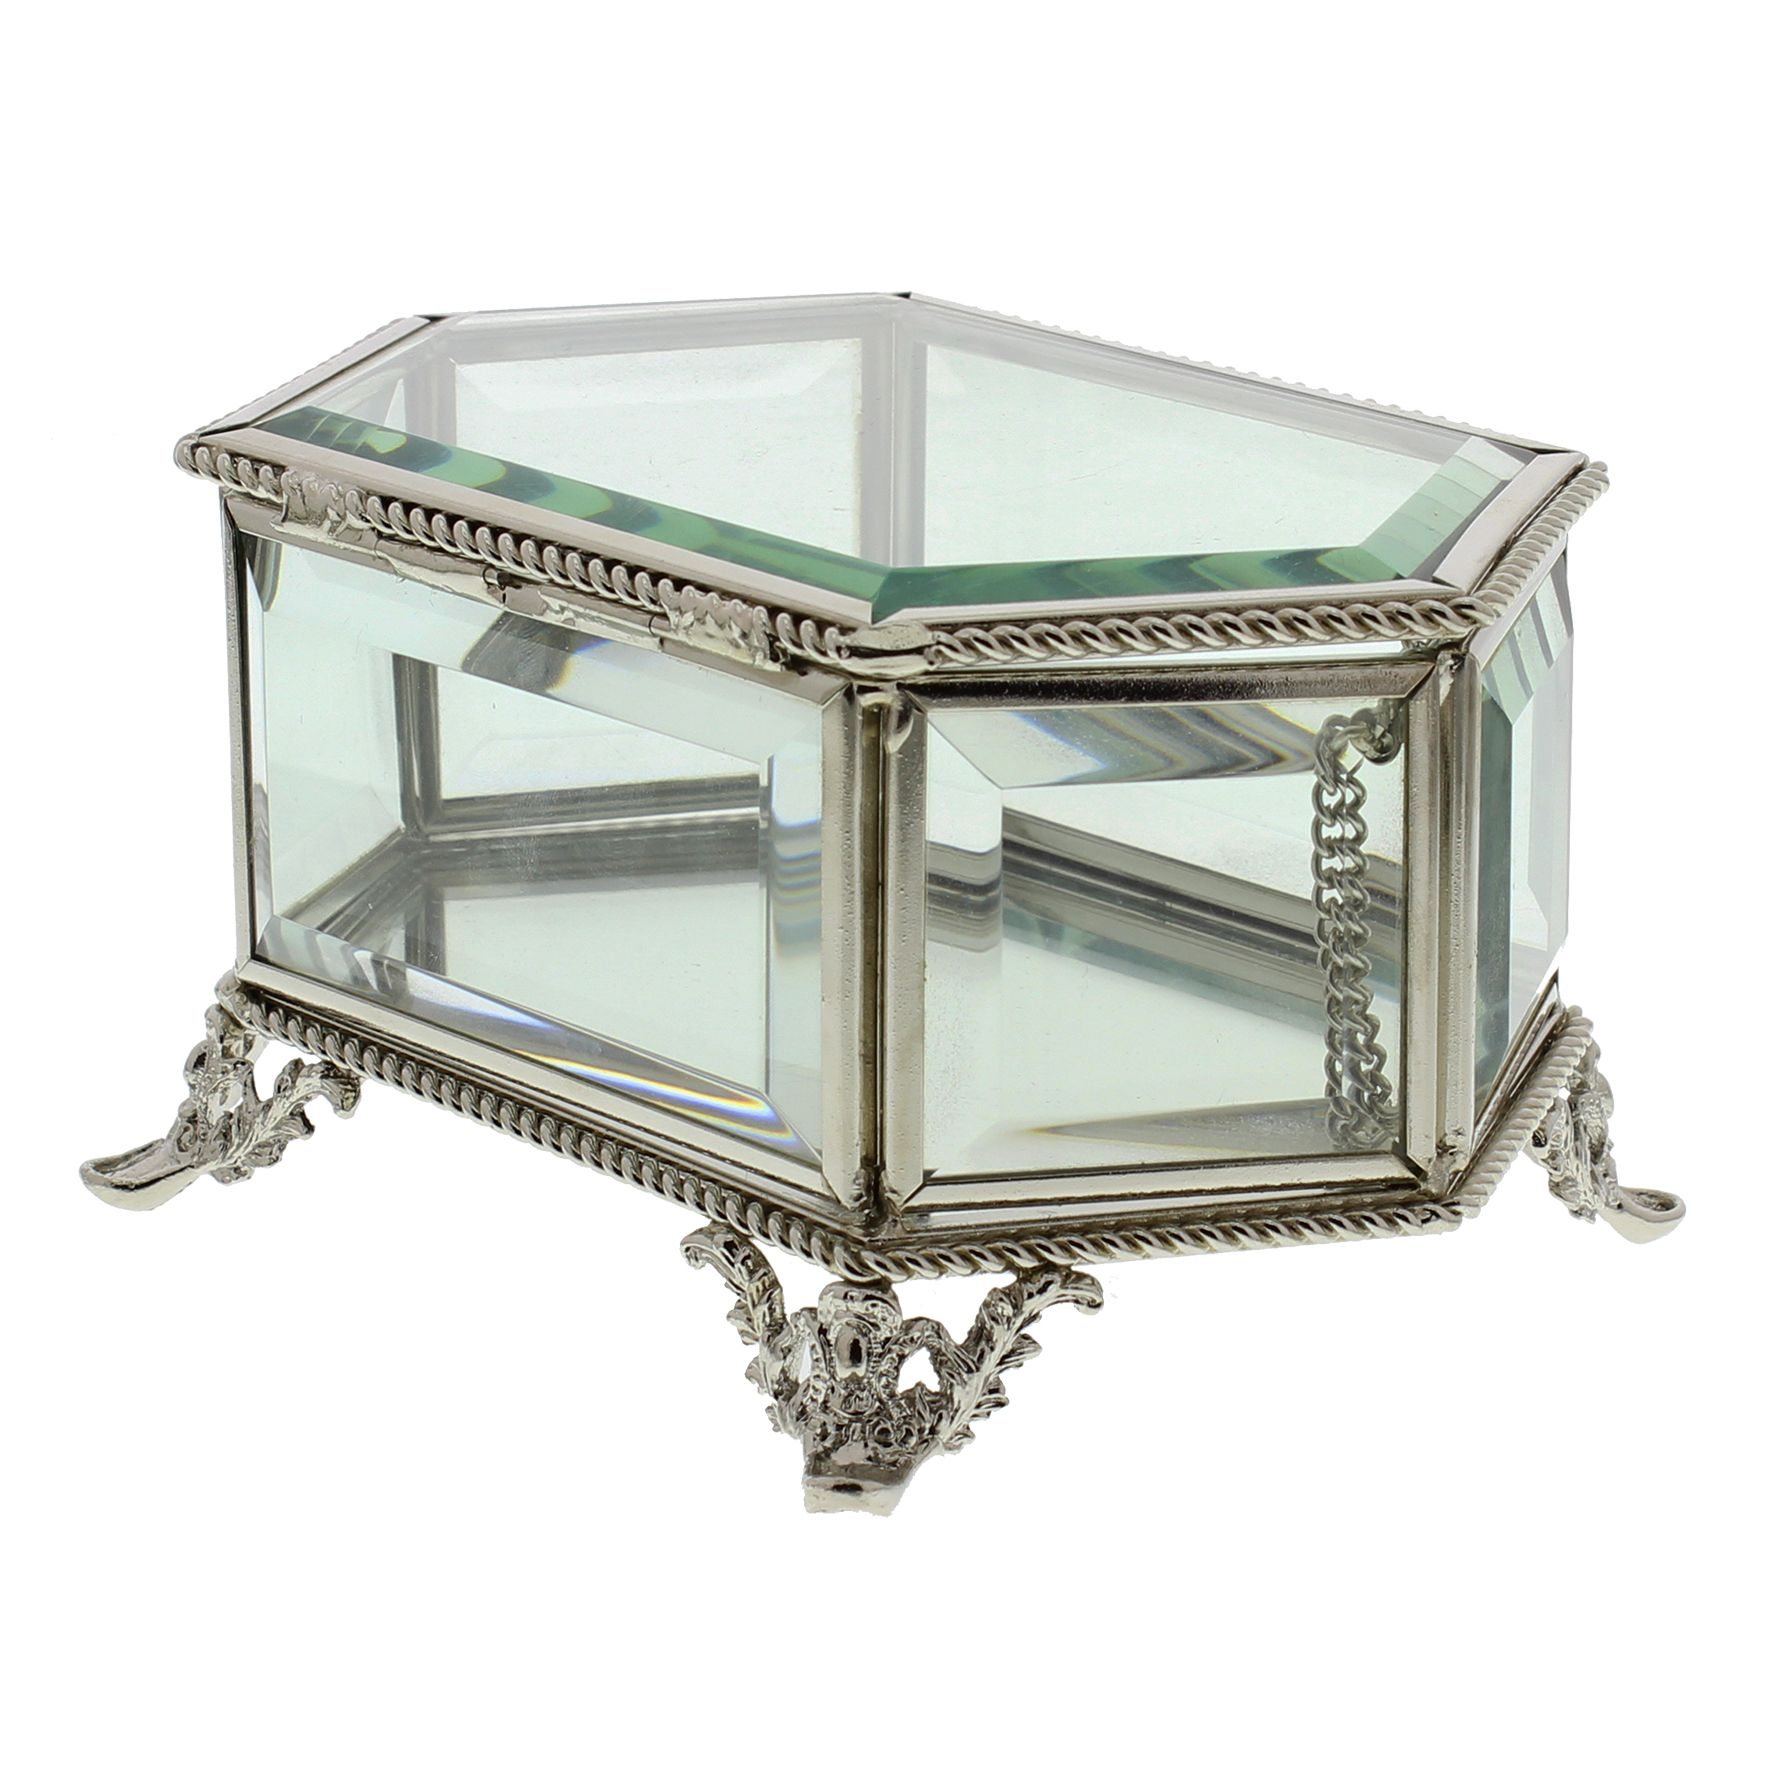 Vintage Style Jewellery Box Clear Glass Vintage Style Jewellery Box